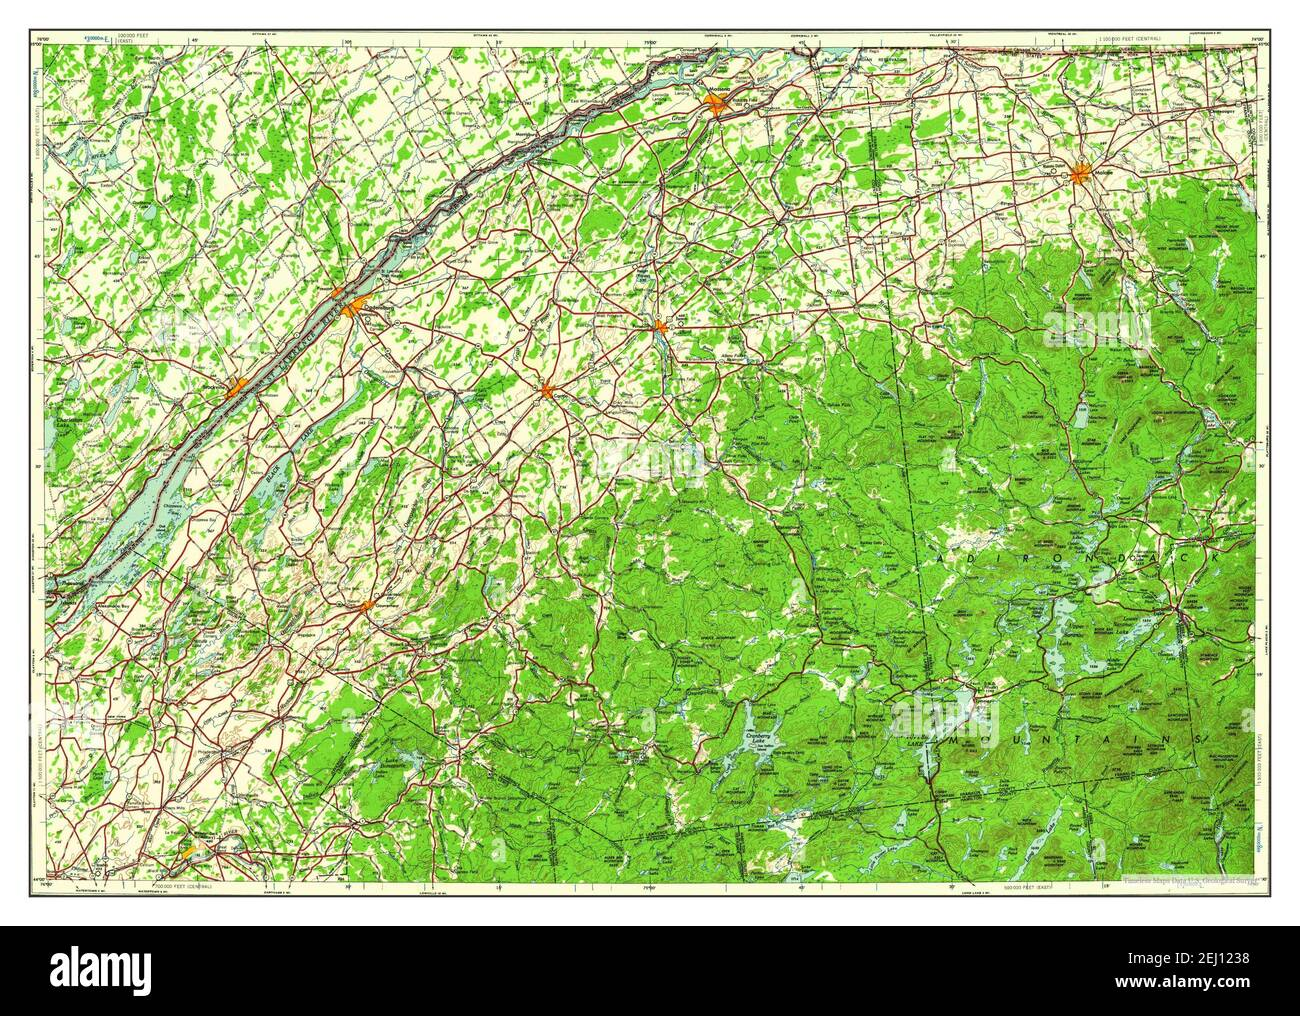 Ogdensburg, New York, map 1961, 1:250000, United States of America by Timeless Maps, data U.S. Geological Survey Stock Photo